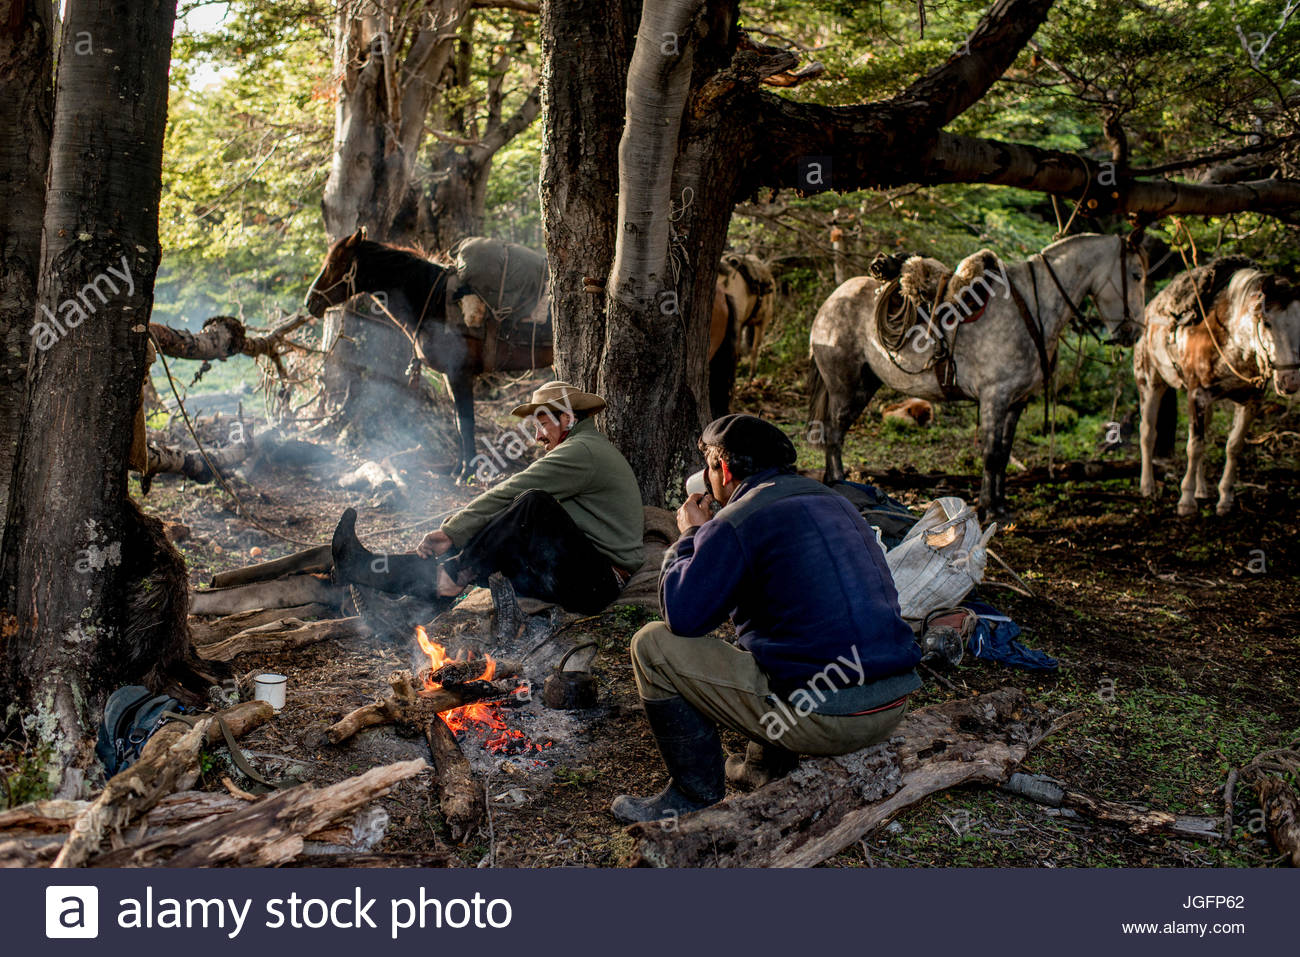 Bagualeros, cowboys who capture feral livestock, eat breakfast and load horses on a trip. Stock Photo